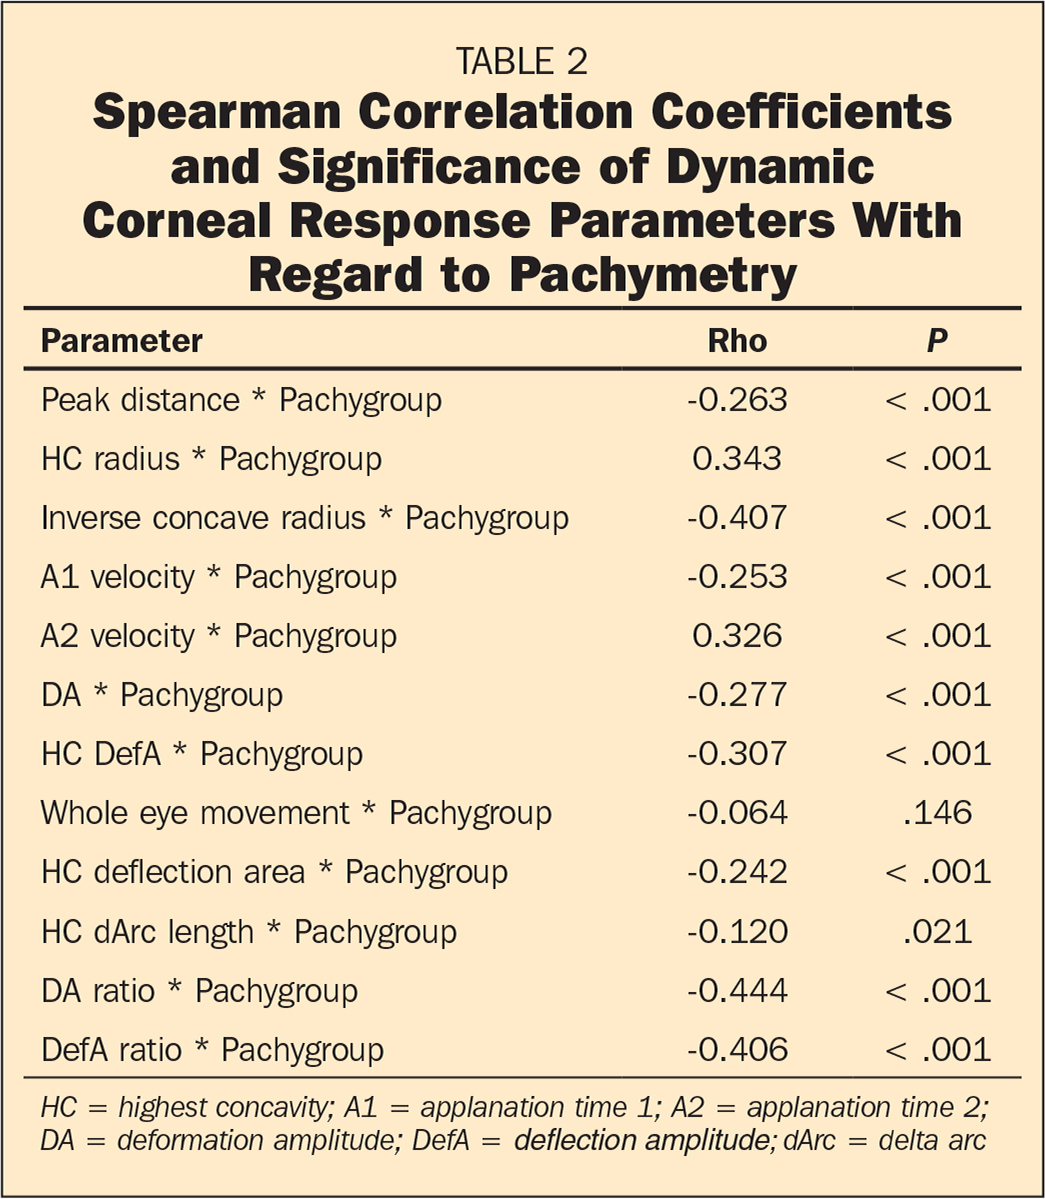 �A;Spearman Correlation Coefficients and Significance of Dynamic Corneal Response Parameters With Regard to Pachymetry